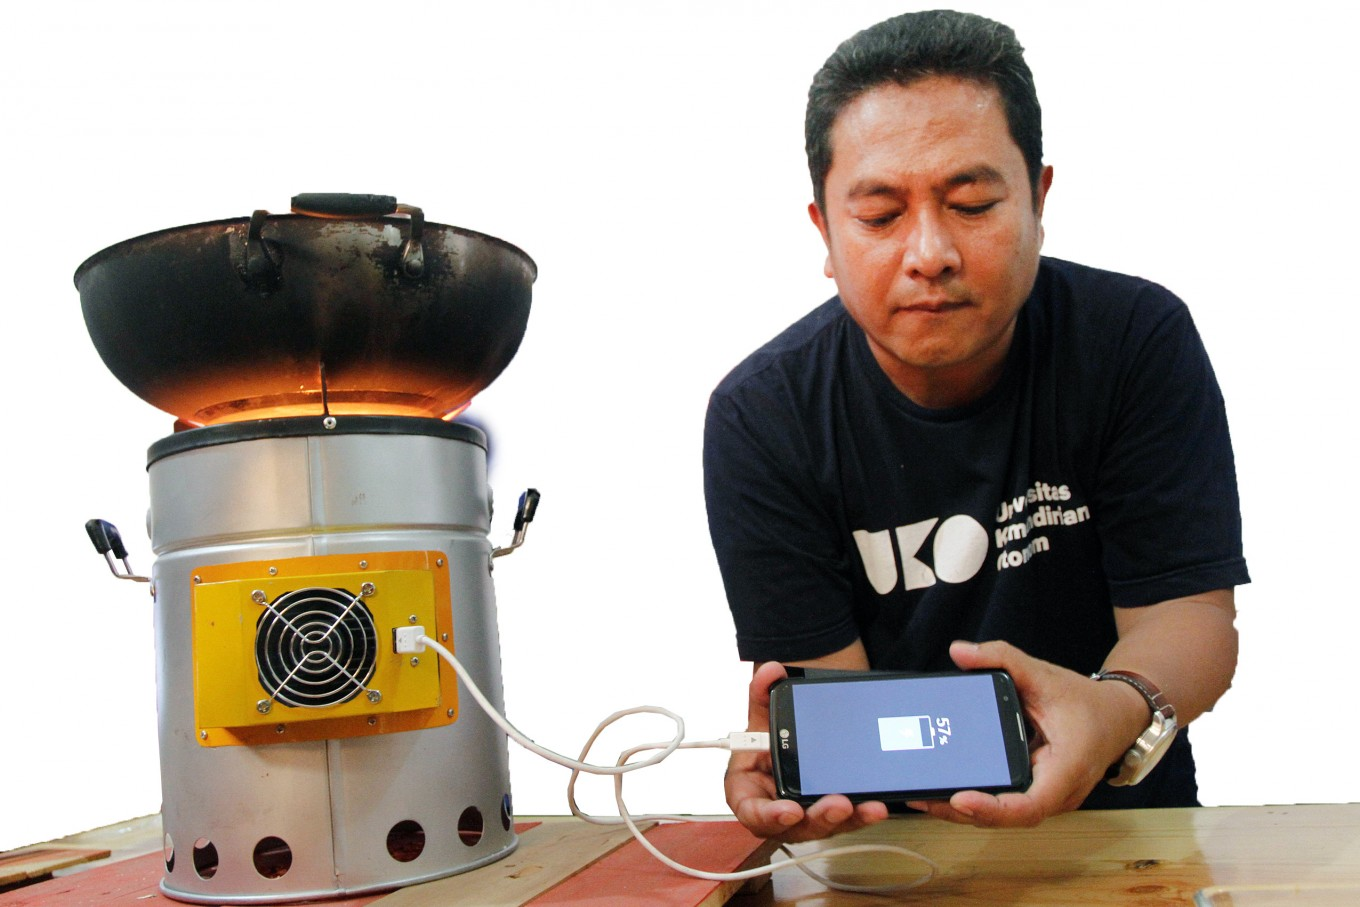 Hawuku stove: Energy innovations for people's welfare